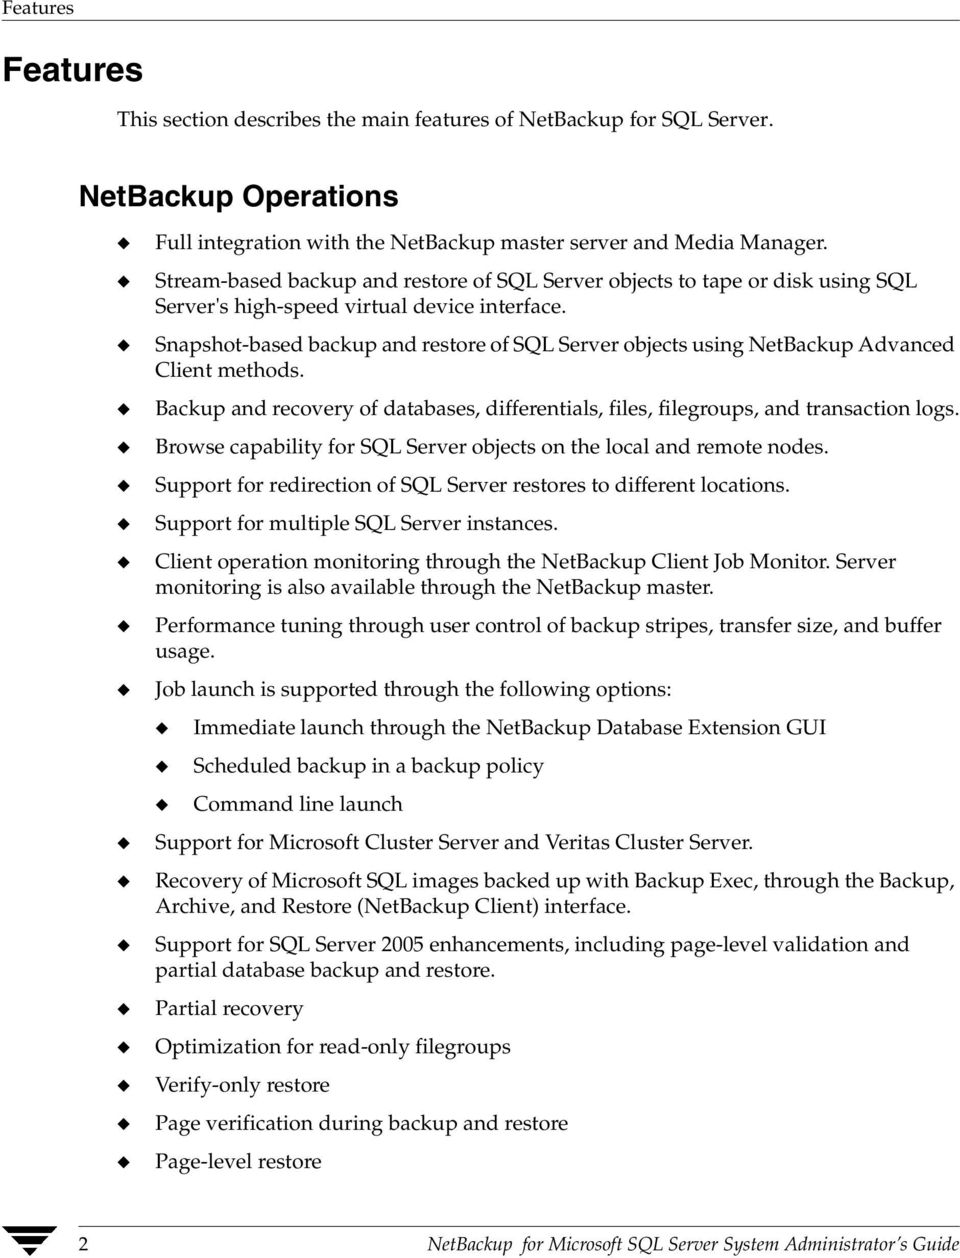 Snapshot-based backup and restore of SQL Server objects using NetBackup Advanced Client methods. Backup and recovery of databases, differentials, files, filegroups, and transaction logs.